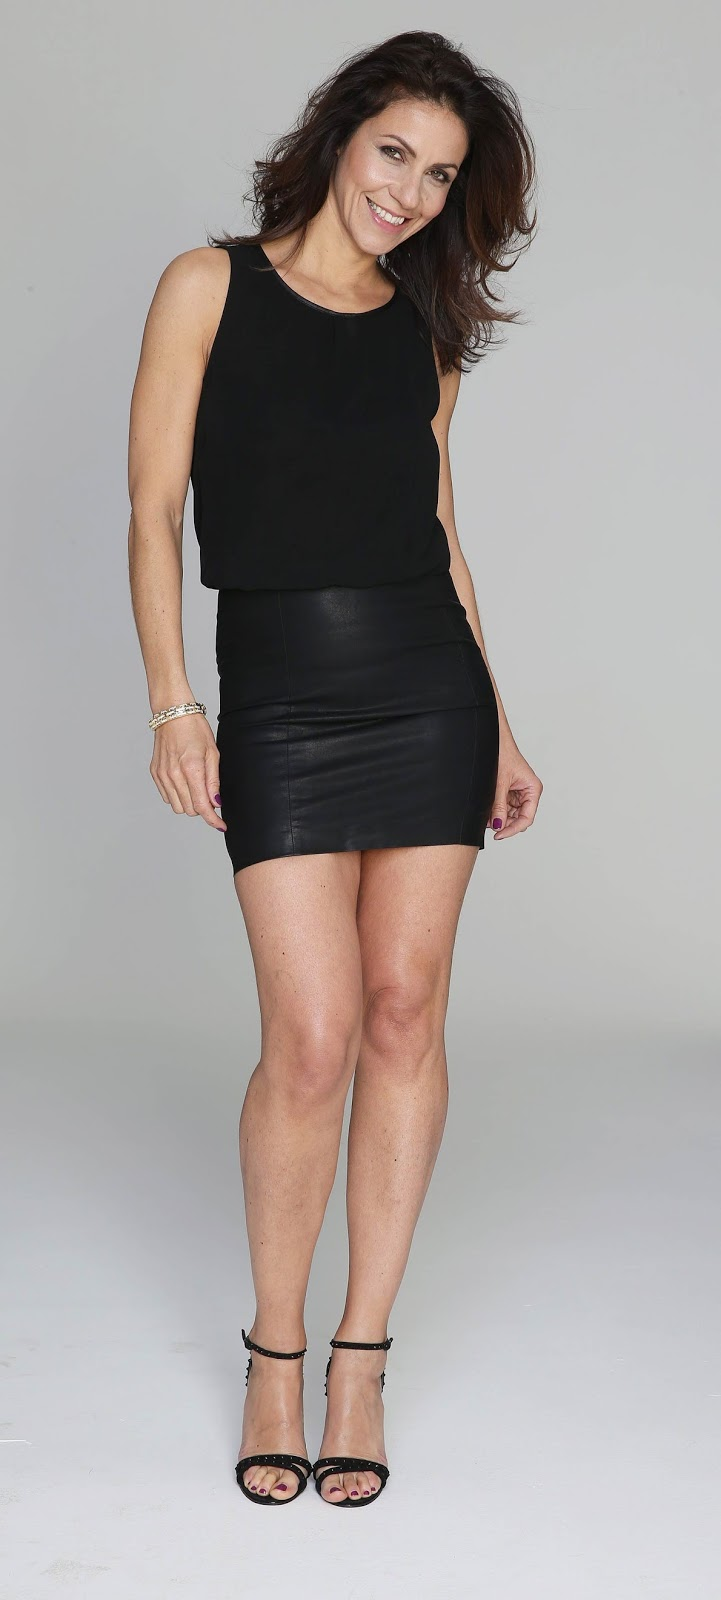 Lovely Ladies in Leather: Julia Bradbury in a leather mini-skirt